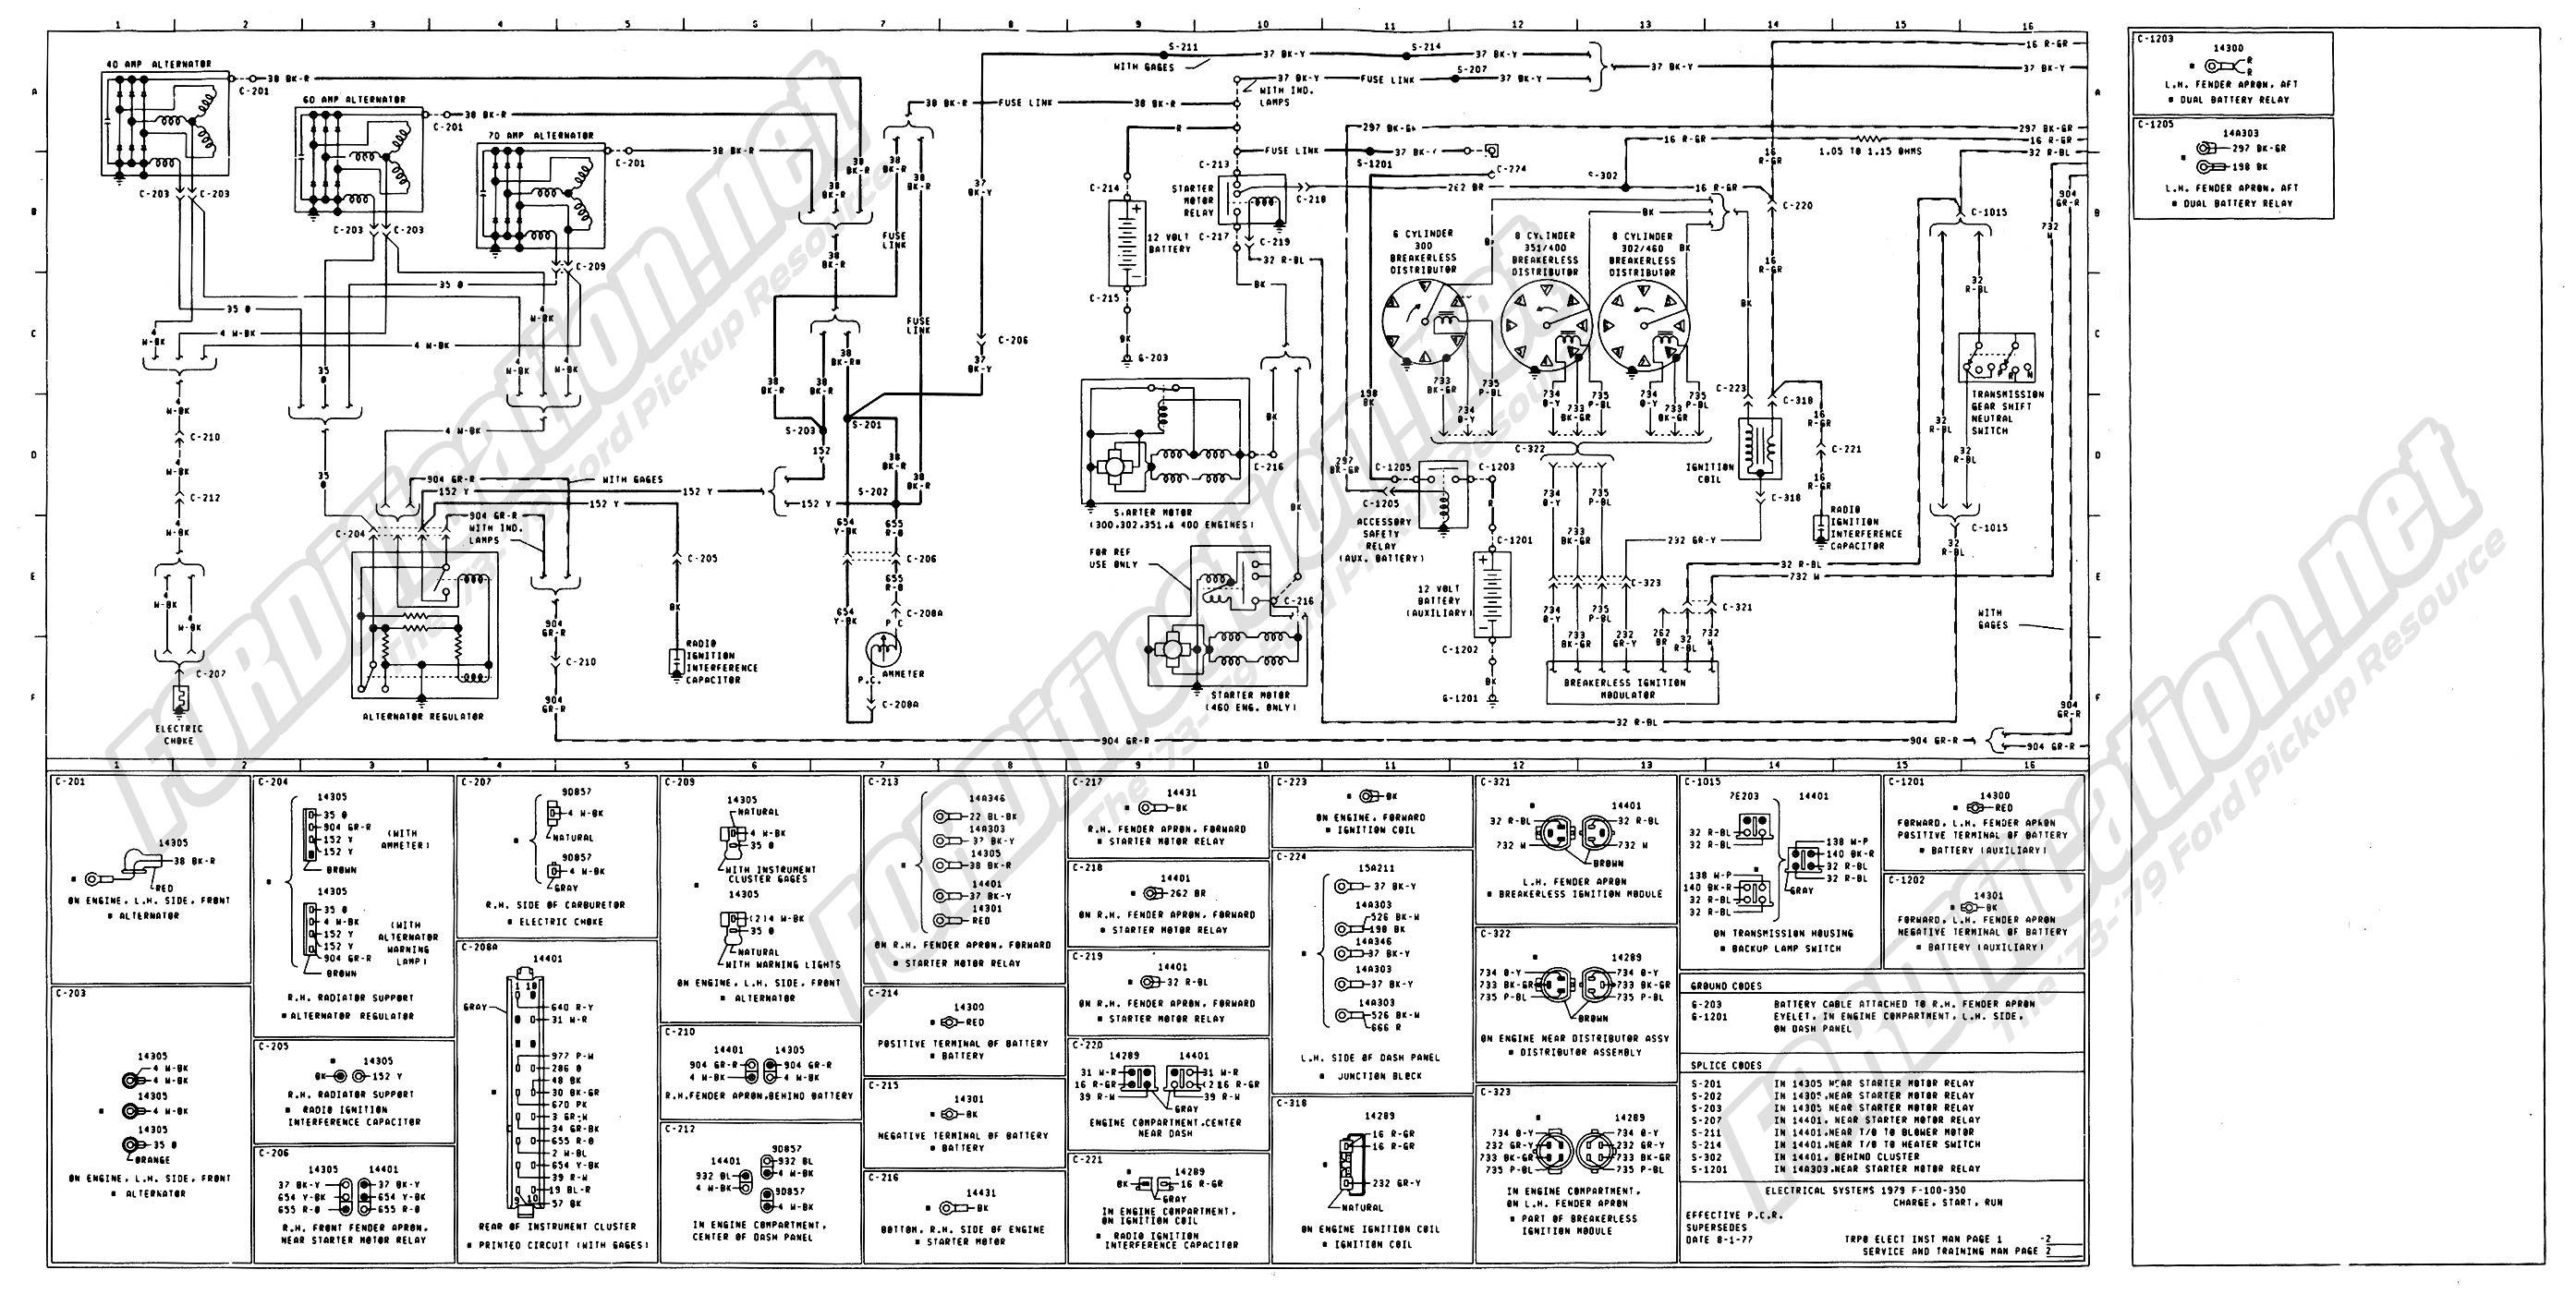 1979 F150 Fuel Gauge Wiring Diagram List Of Schematic Circuit Stewart  Warner Fuel Gauge Wiring Diagram Ford F 150 Fuel Gauge Wiring Diagram